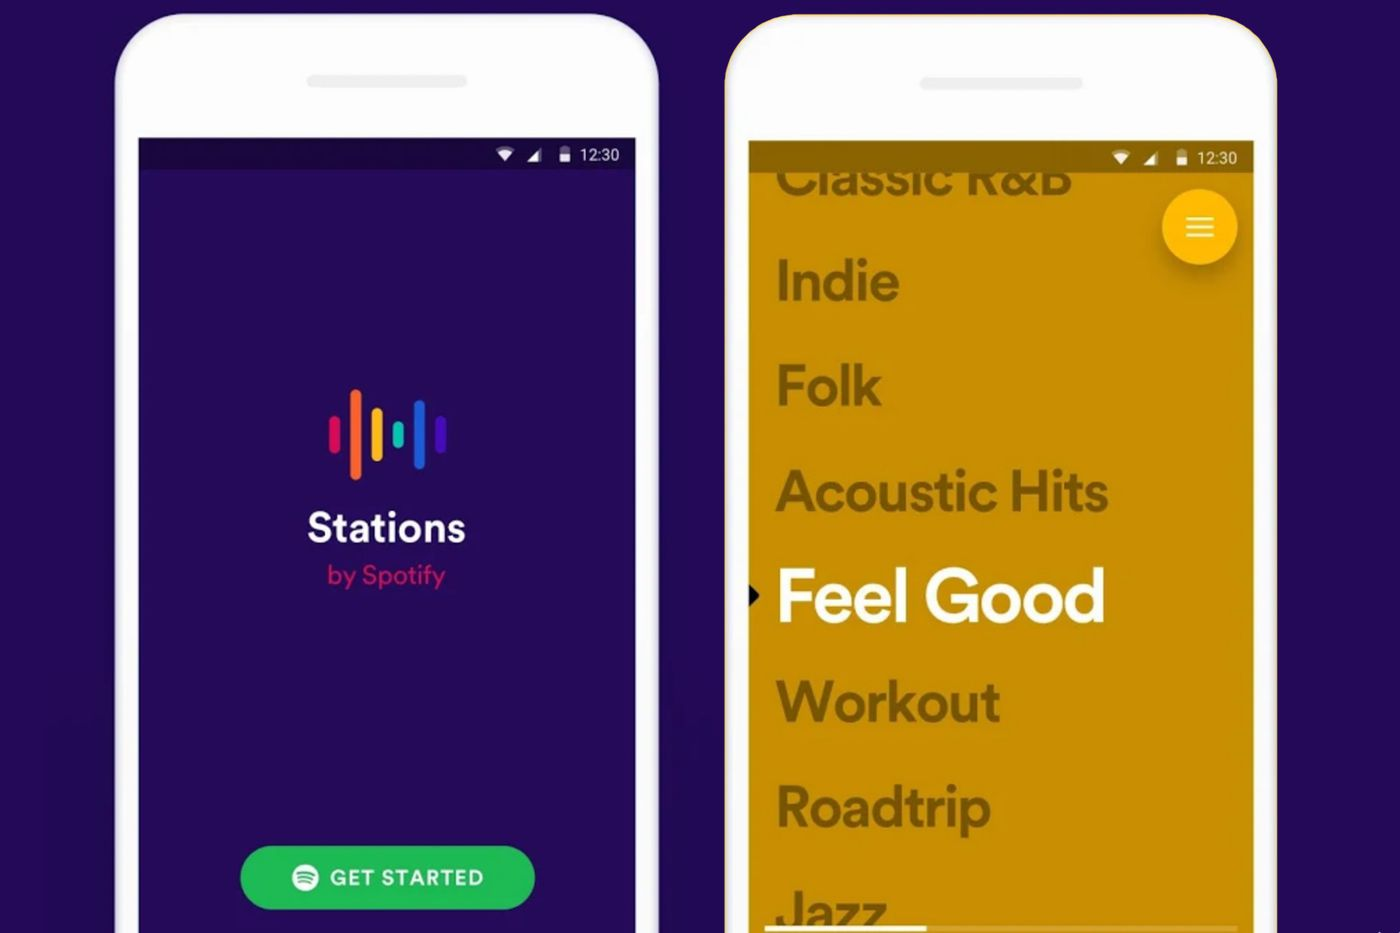 stations door spotify